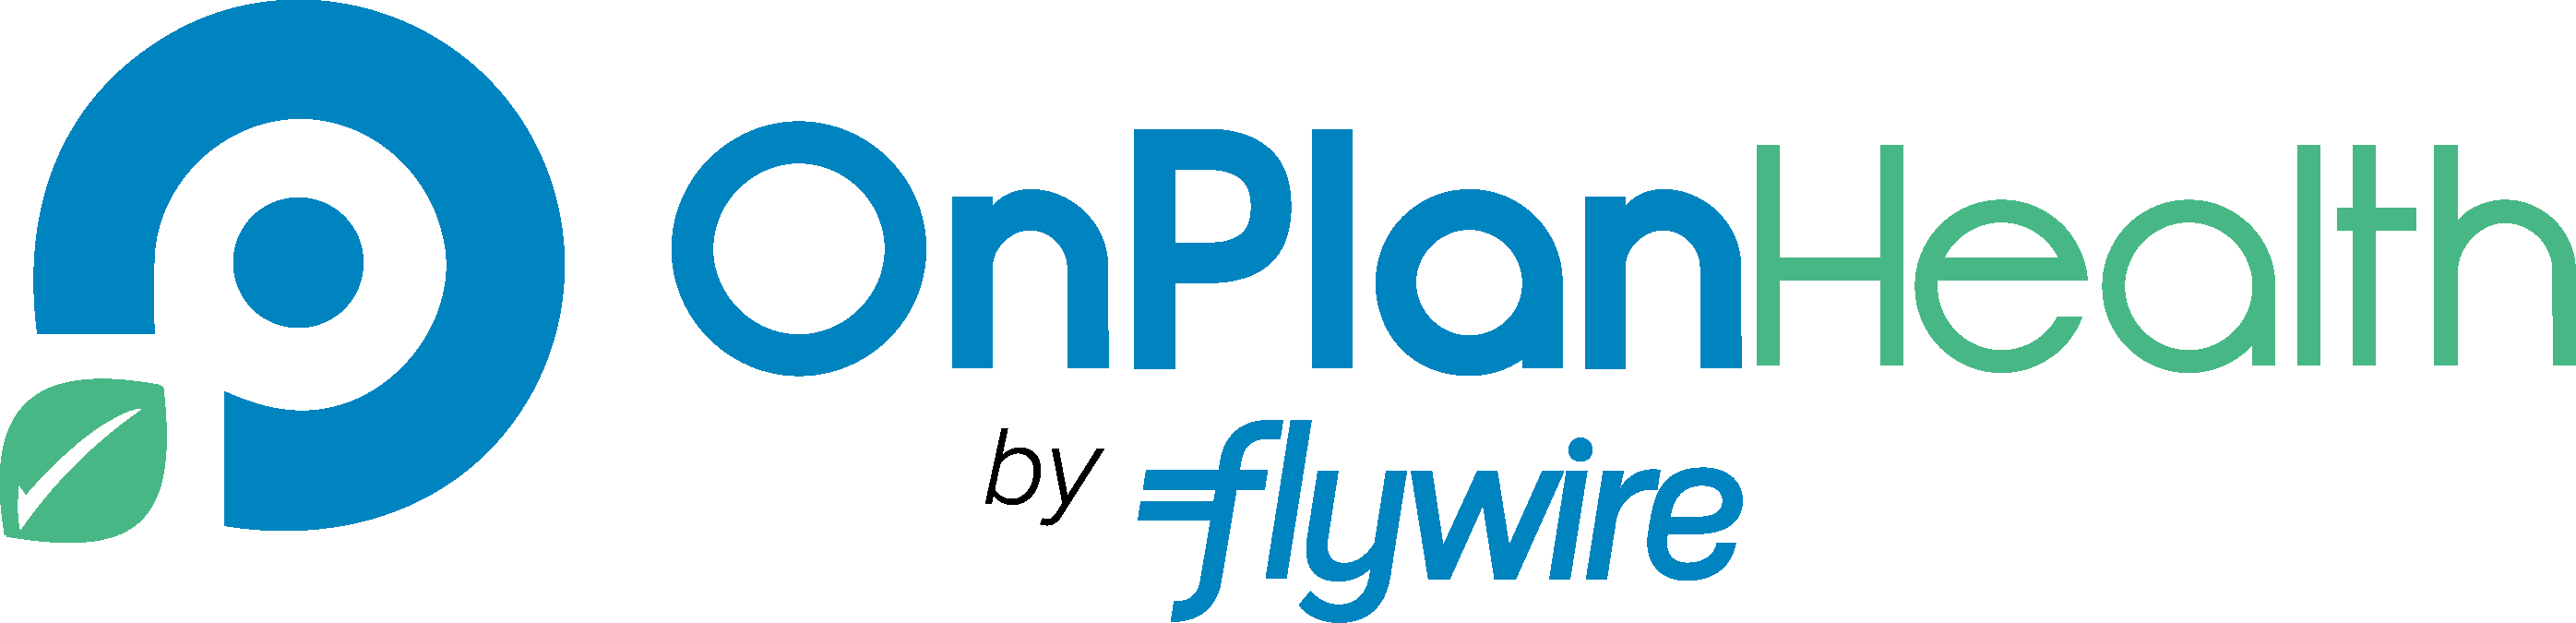 OnplanHealth_by_flywire (1)